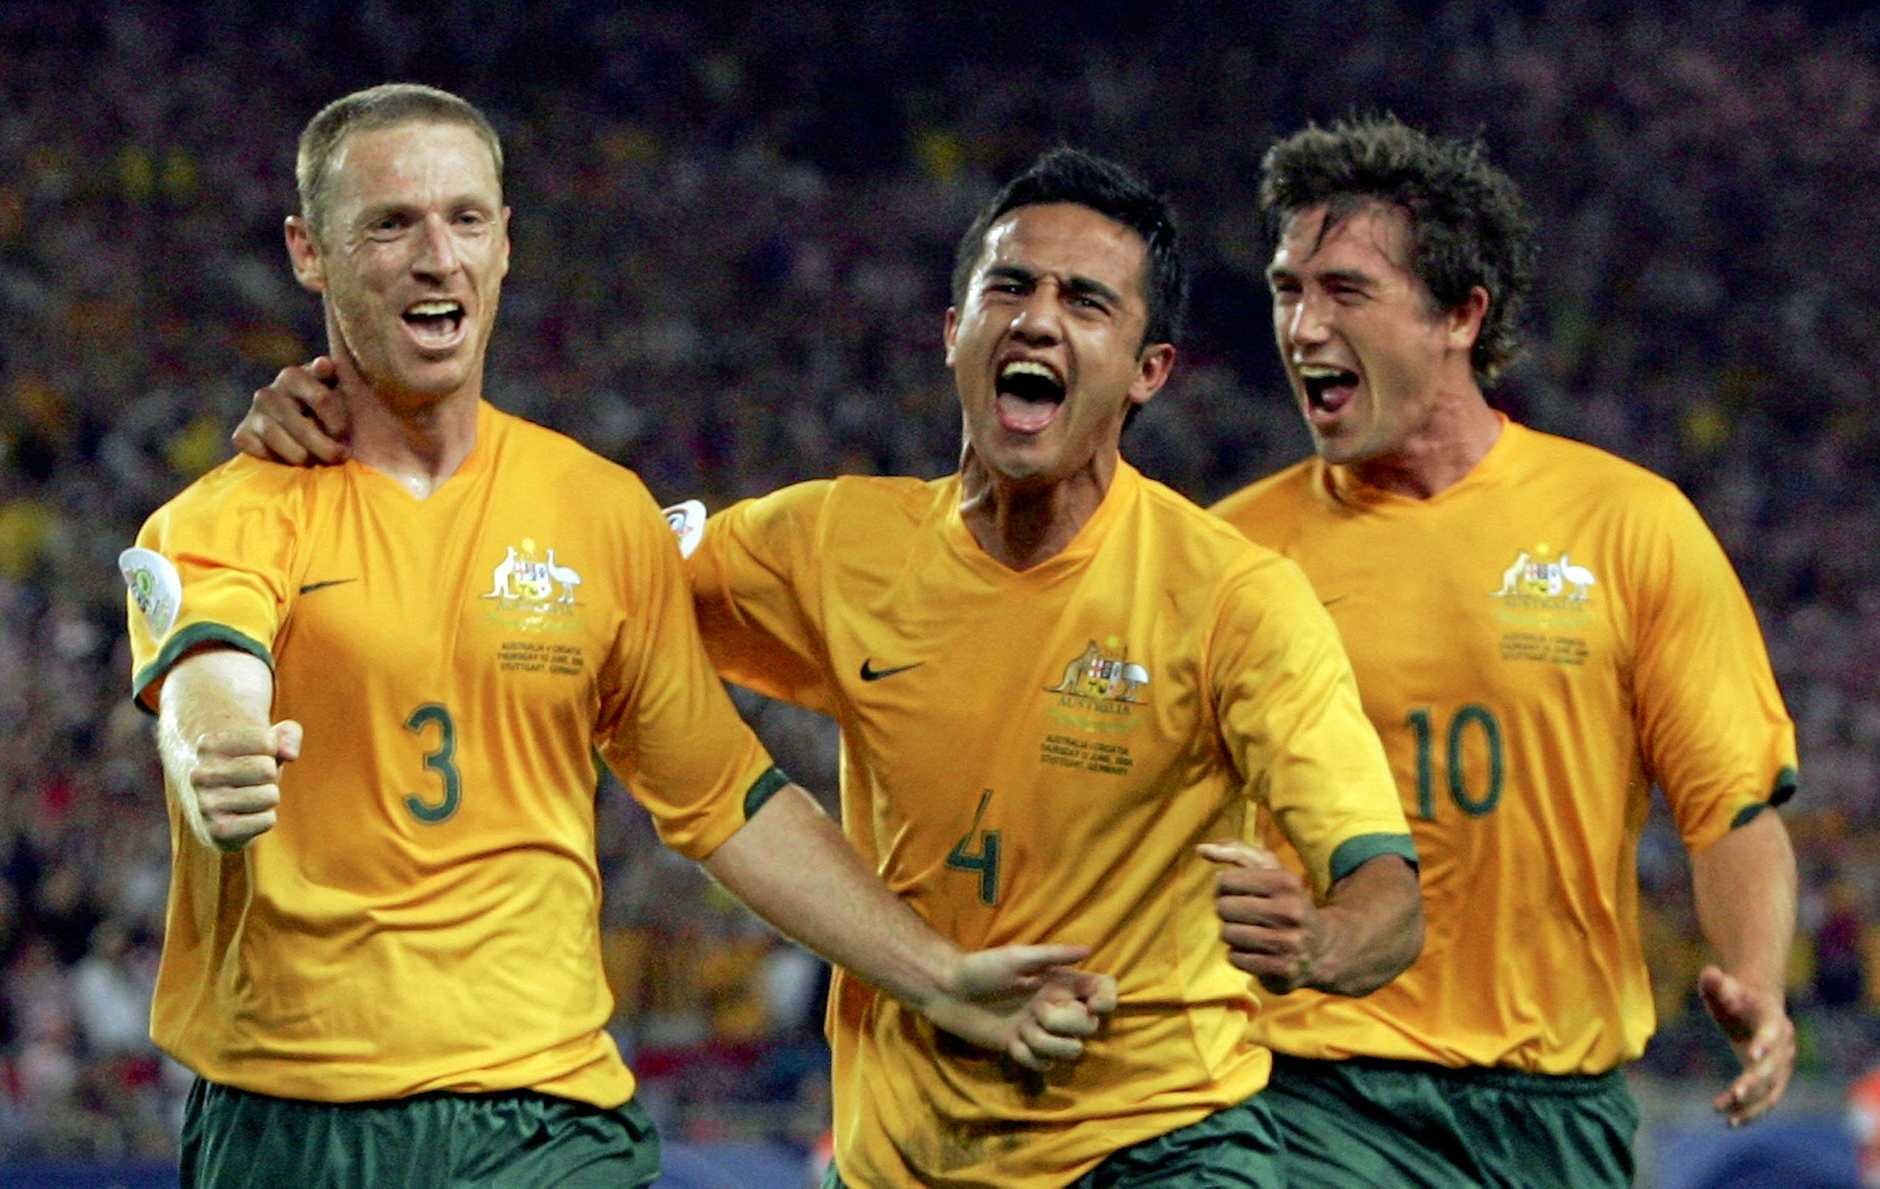 STUTTGART, GERMANY - JUNE 22:  Craig Moore #3 (L) of Australia celebrates with teammates Tim Cahill (C) and Harry Kewell (R), after taking a penalty to level the scores at 1-1 during the FIFA World Cup Germany 2006 Group F match between Croatia and Australia at the Gottlieb-Daimler Stadium on June 22, 2006 in Stuttgart, Germany.  (Photo by Robert Cianflone/Getty Images)